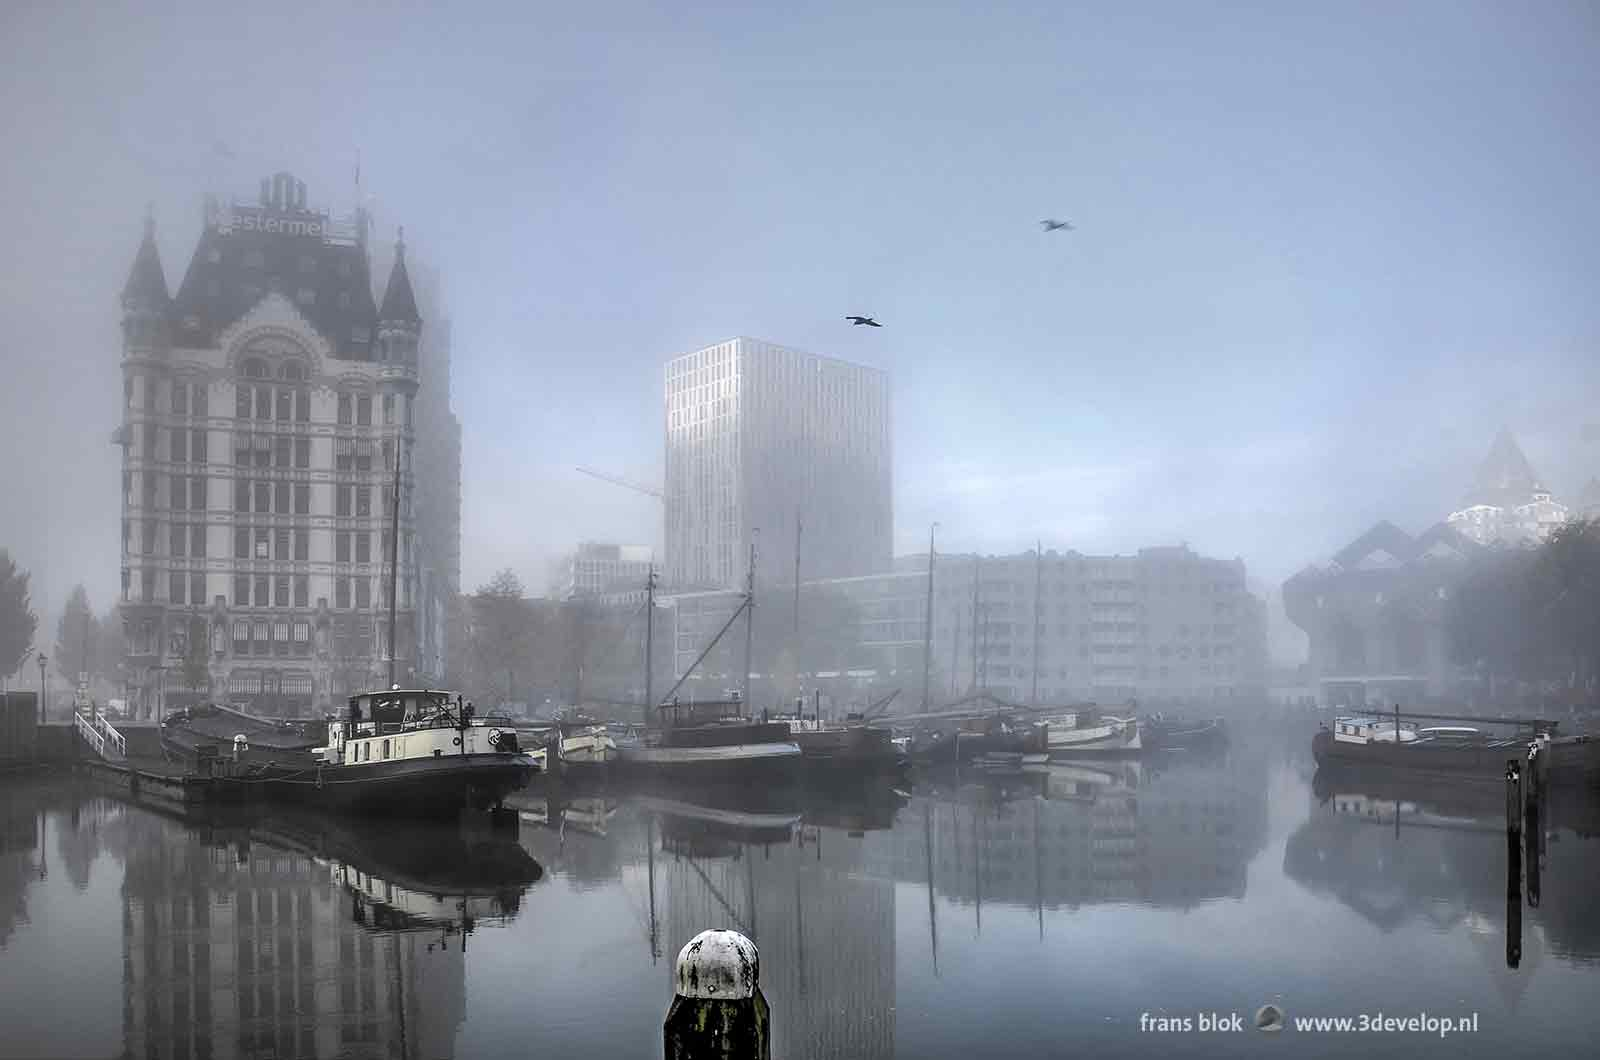 Surrealistic image of the Old Harbour in Rotterdam with the White House and the Cube Dwellings on a misty day in autumn